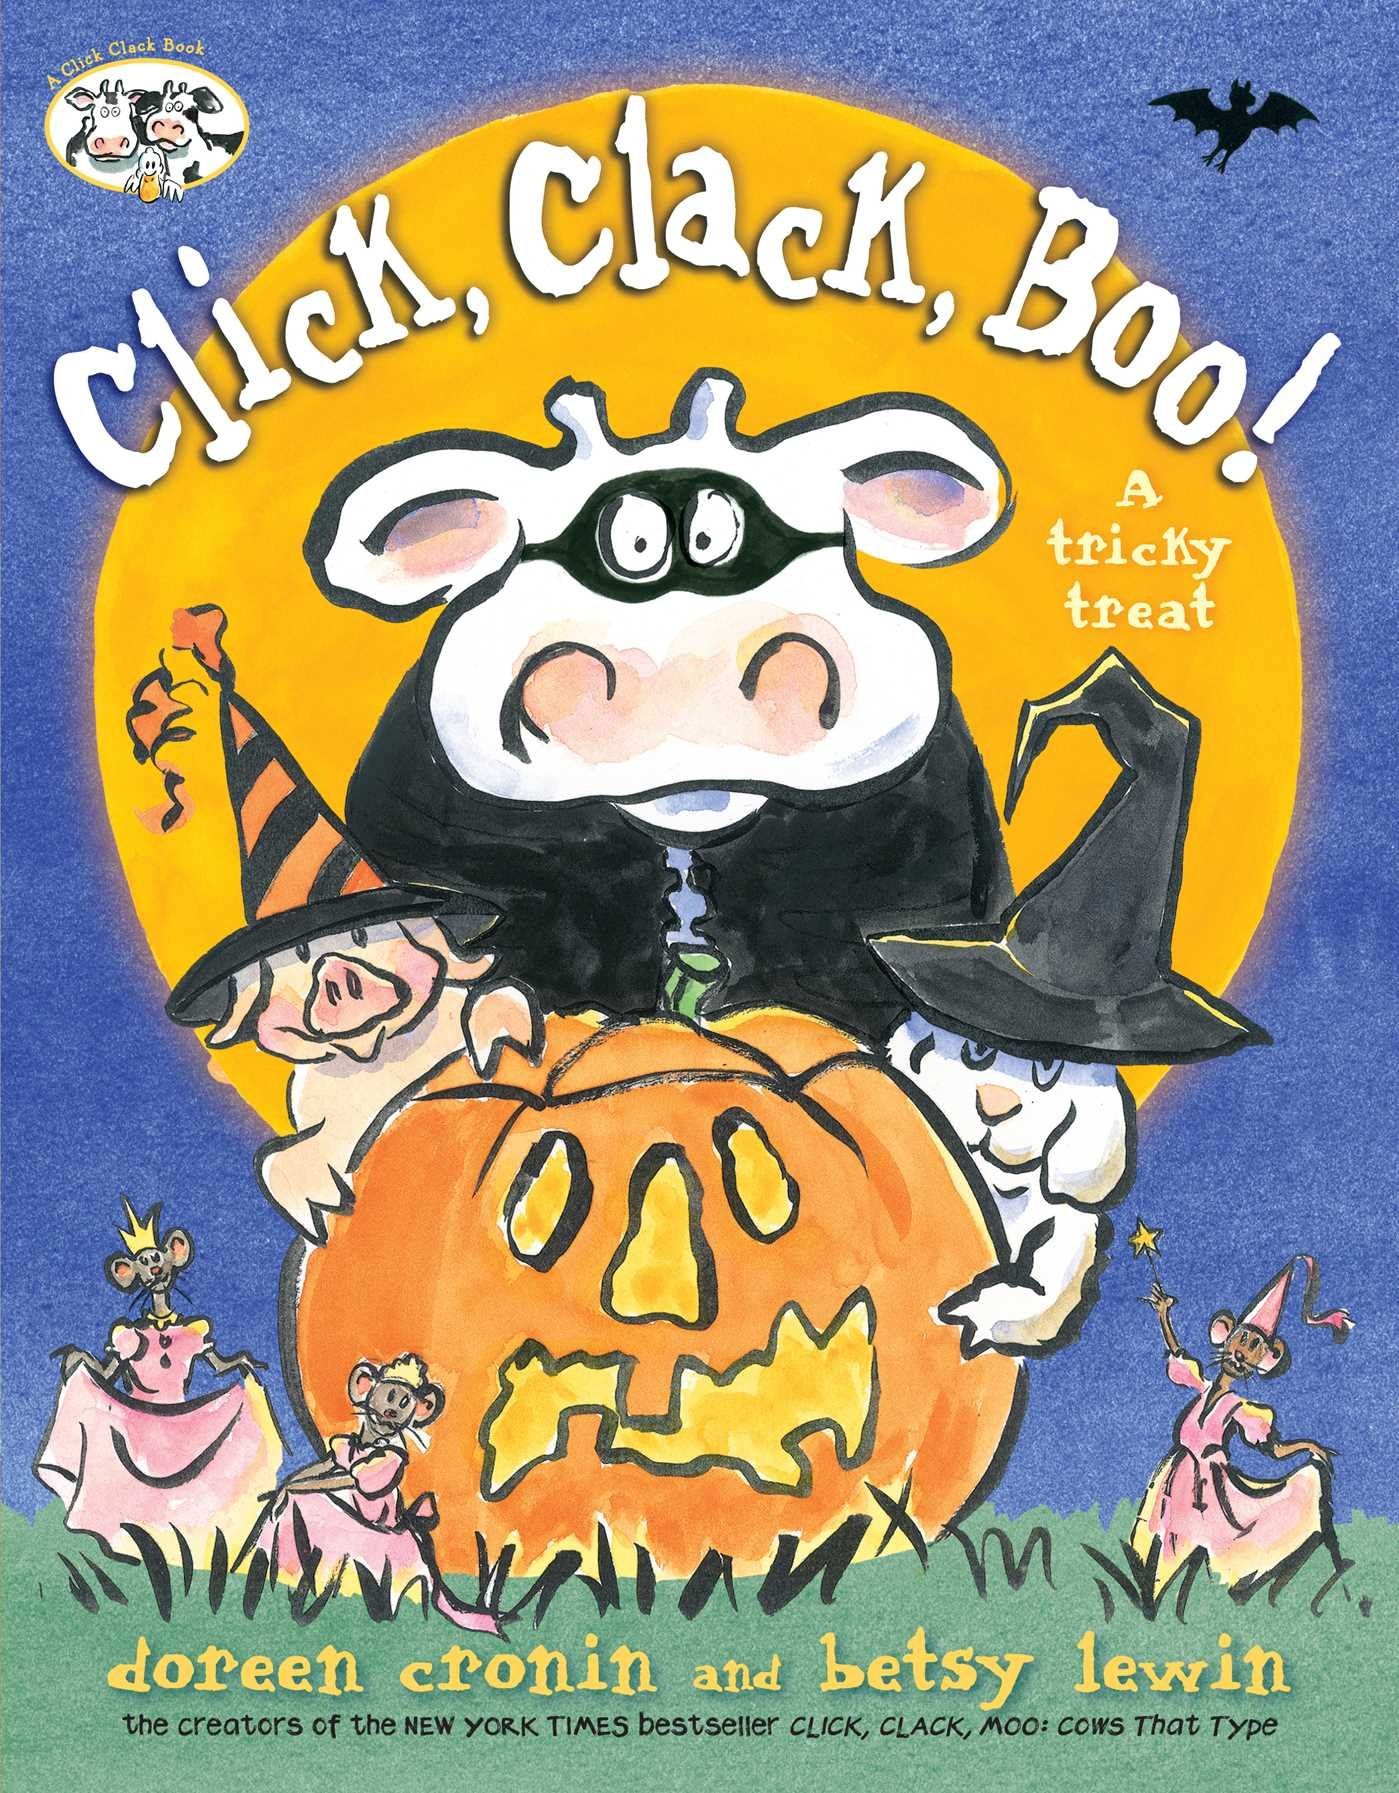 Click, Clack, Boo!: A Tricky Treat (A Click Clack Book) by Atheneum Books for Young Readers (Image #1)